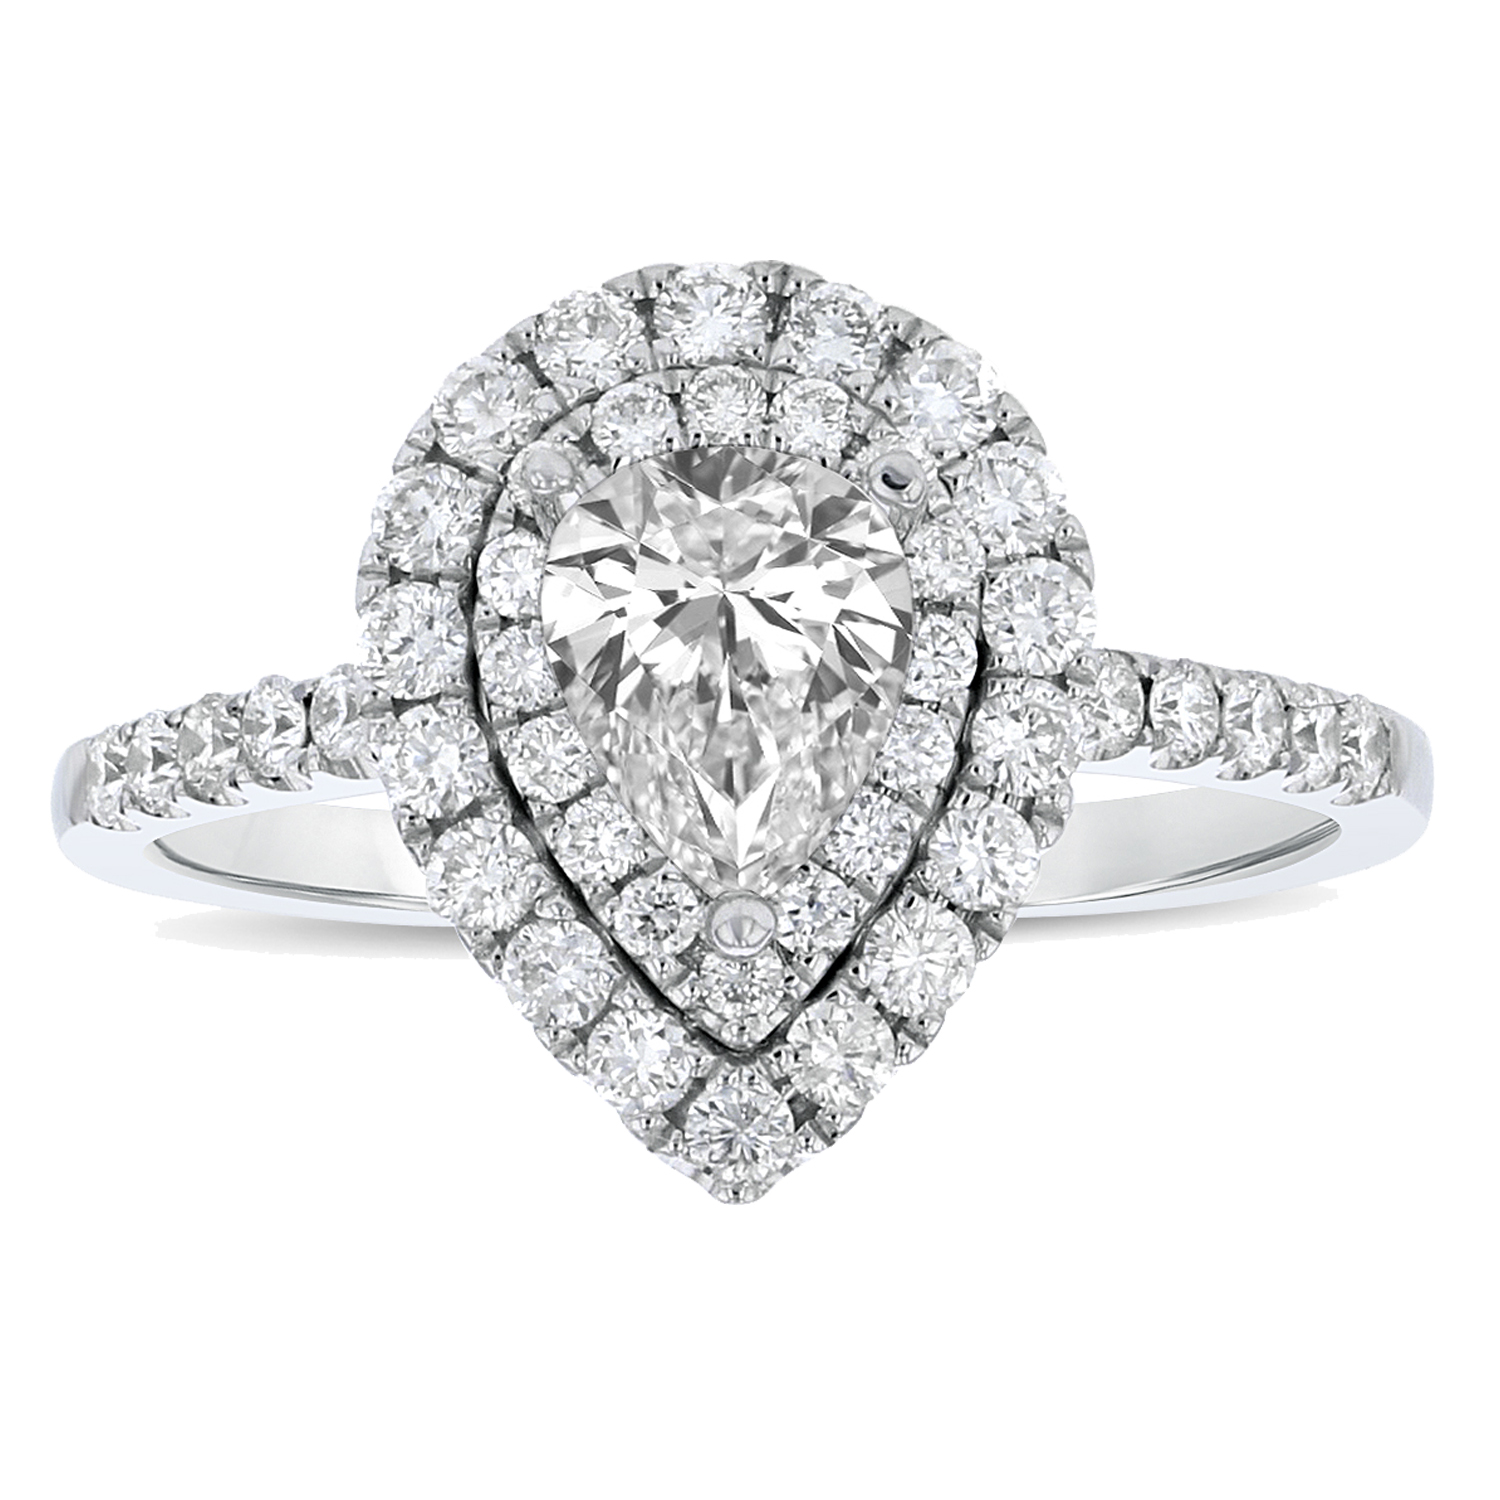 View 1.09ctw Diamond Engagment Ring in 18k white gold